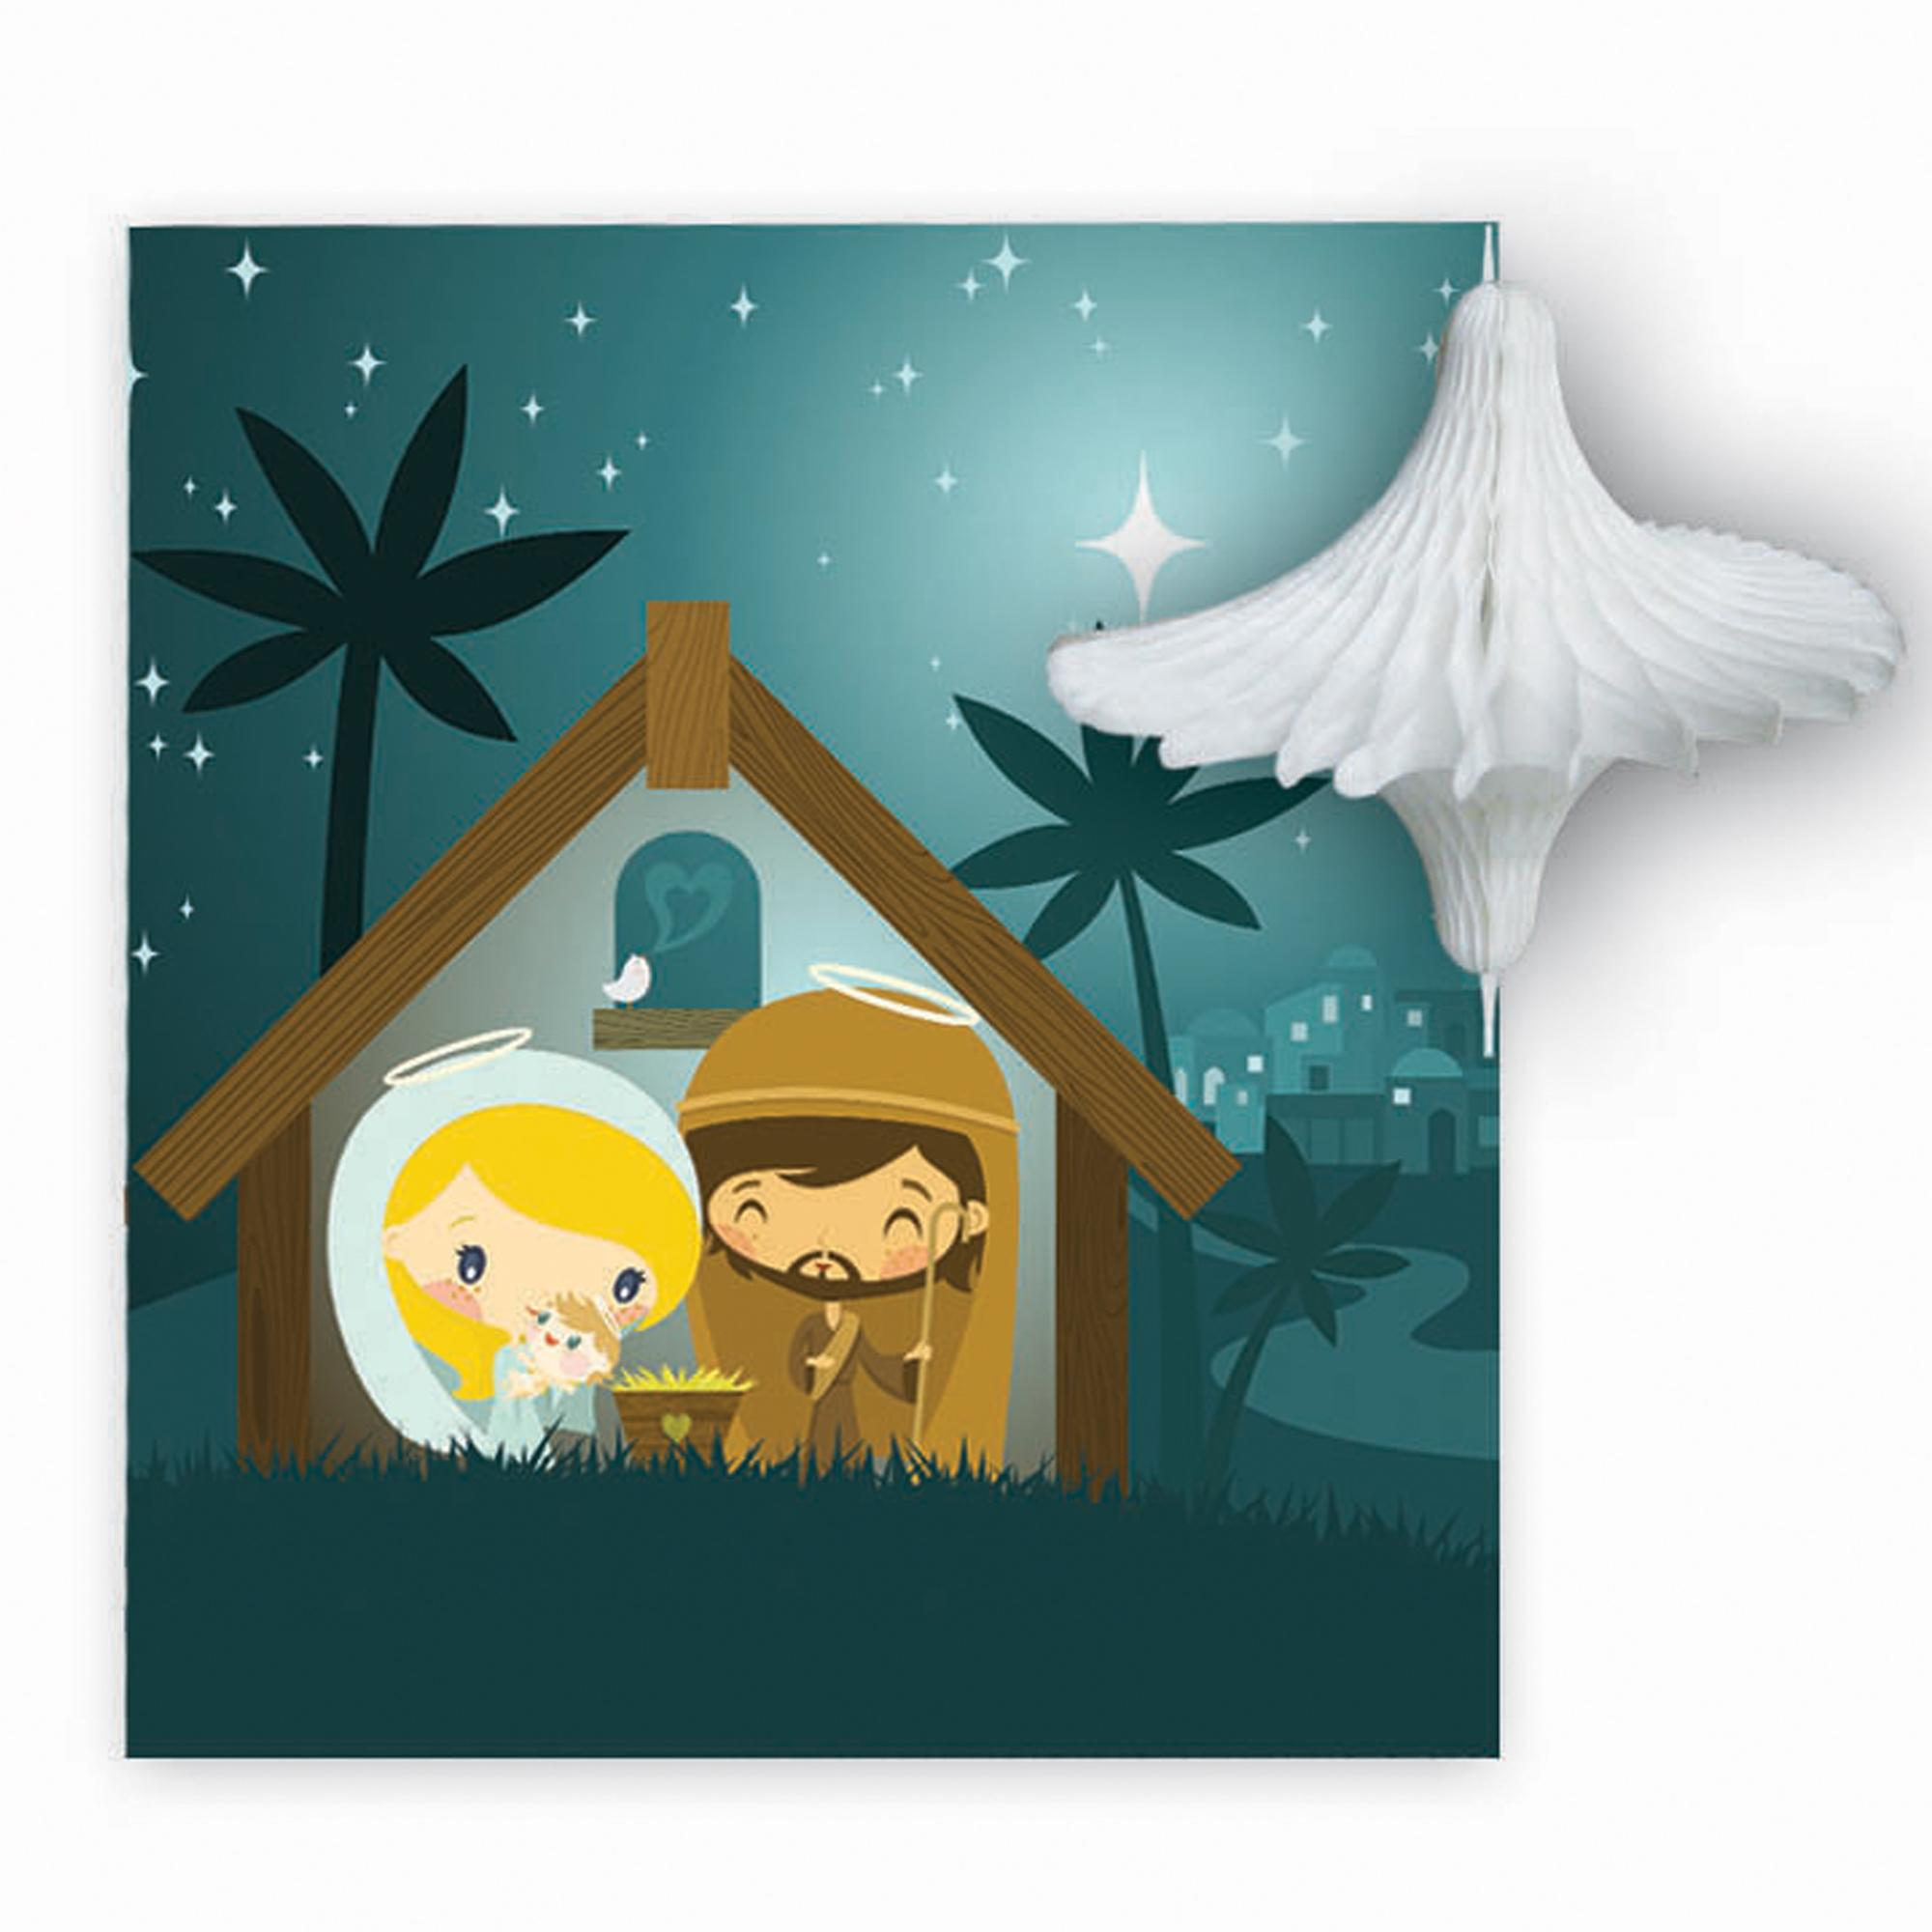 Pulp Pop Up Nativity Christmas Card Cancer Research Uk